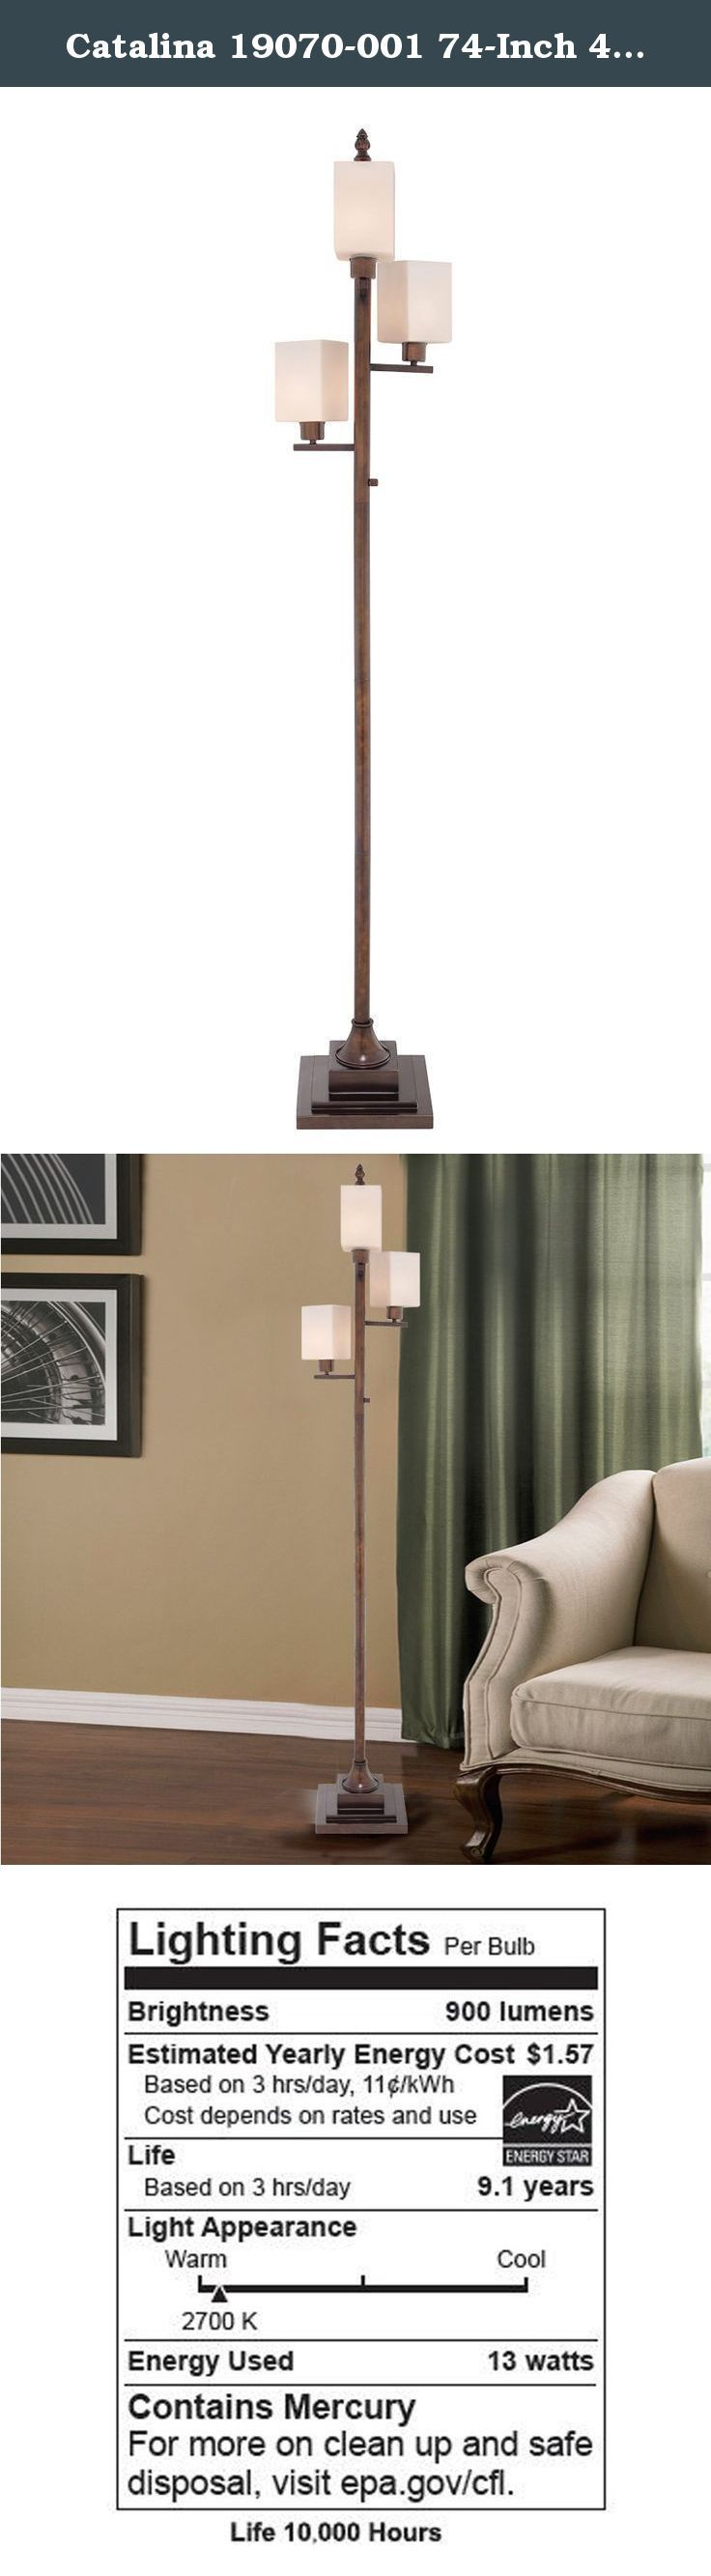 Catalina 19070-001 74-Inch 4-Light Transitional Metal Floor Lamp with Square White Glass Shades and Bulb. The Catalina 19070-001 Floor Lamp offers a stylish transitional design. The metal floor lamp features a stylish base design with an oil-rubbed bronze finish and white opal glass shade. This lamp is rated for 120-volts and uses (3) 60-watt incandescent bulbs or (3) 13-watt E26 CFL spiral bulbs. (3) 13-watt E26 CFL spiral bulbs are included. The light source is soft and the illumination…